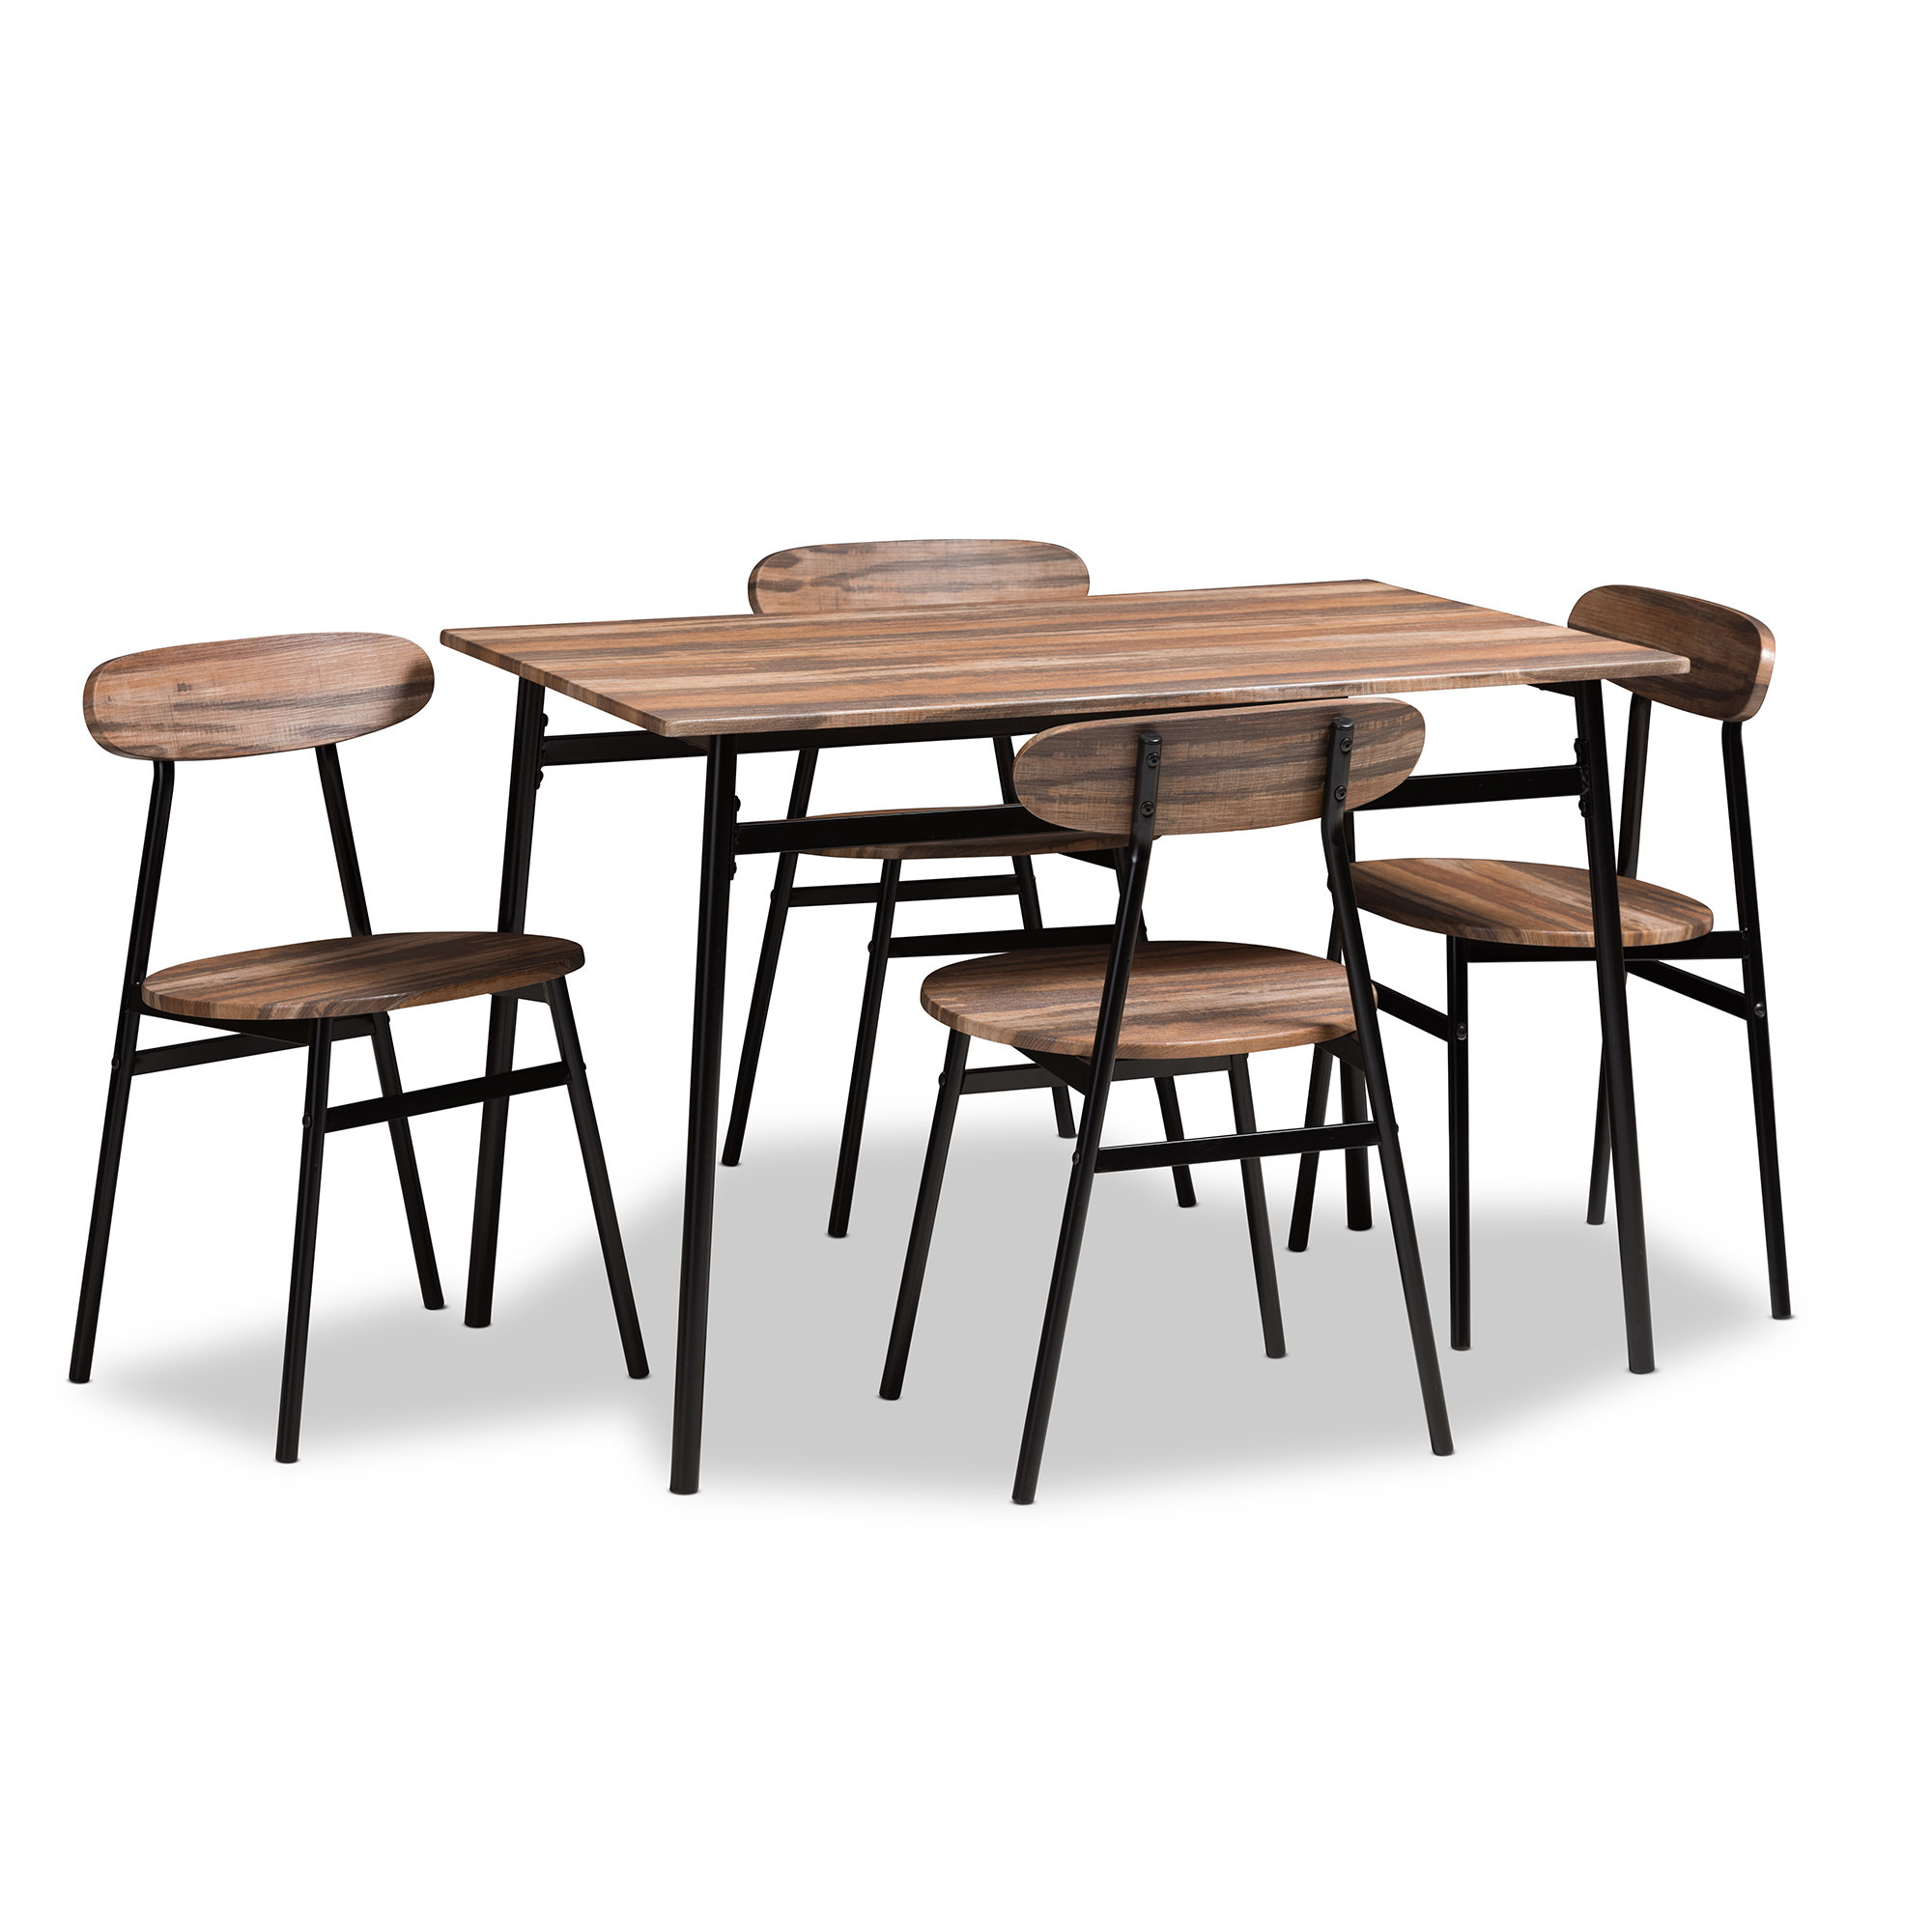 Wayfair With Regard To Well Known Shepparton Vintage 3 Piece Dining Sets (View 21 of 25)